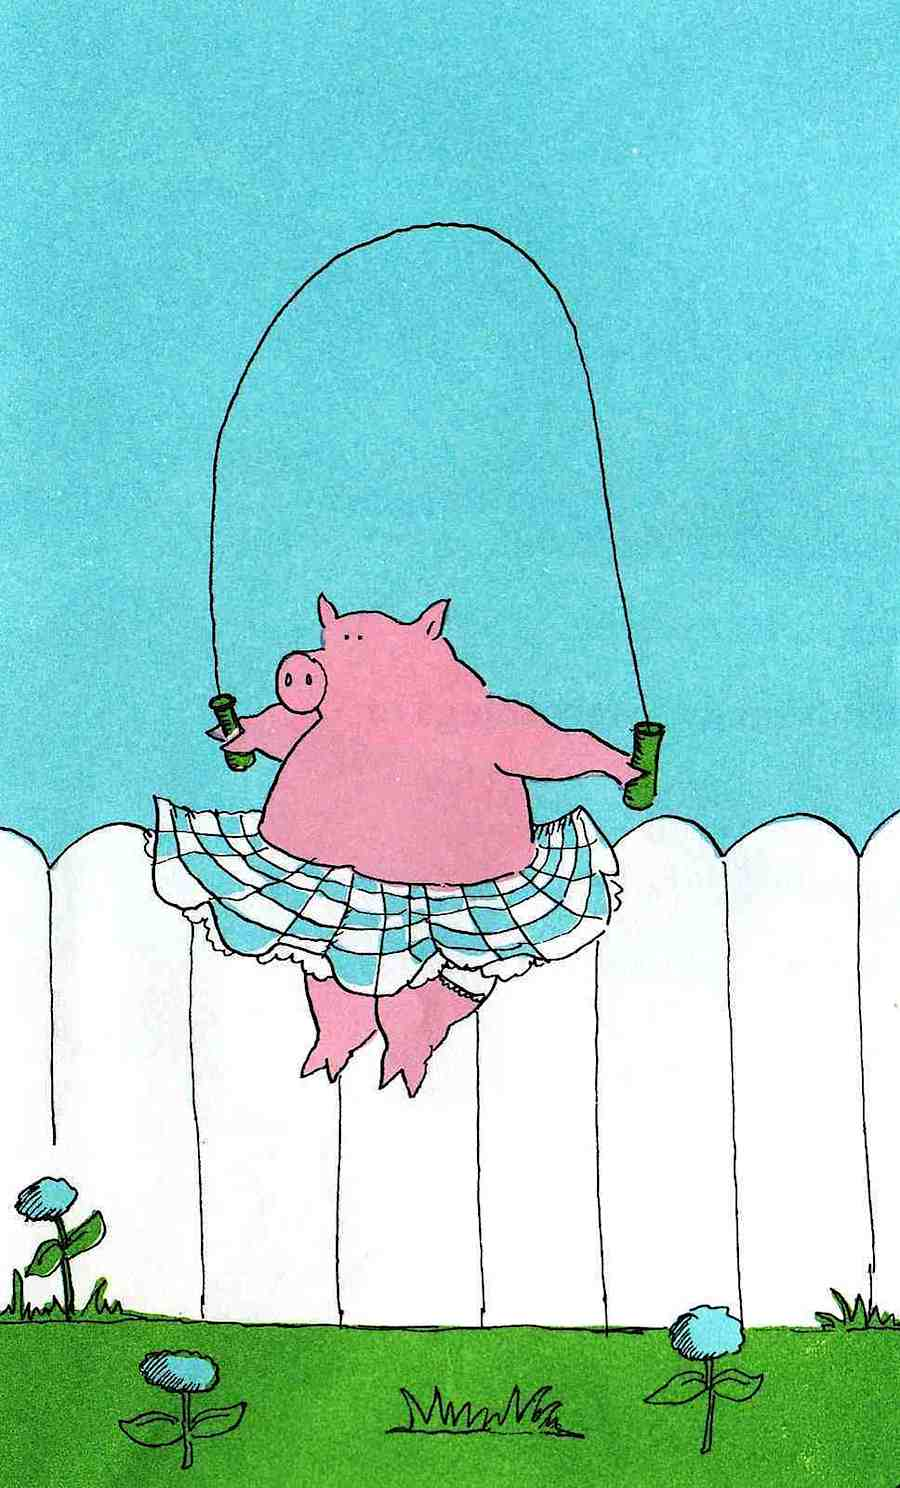 a James Marshall 1973 children's book illustration, a girl pig skipping rope